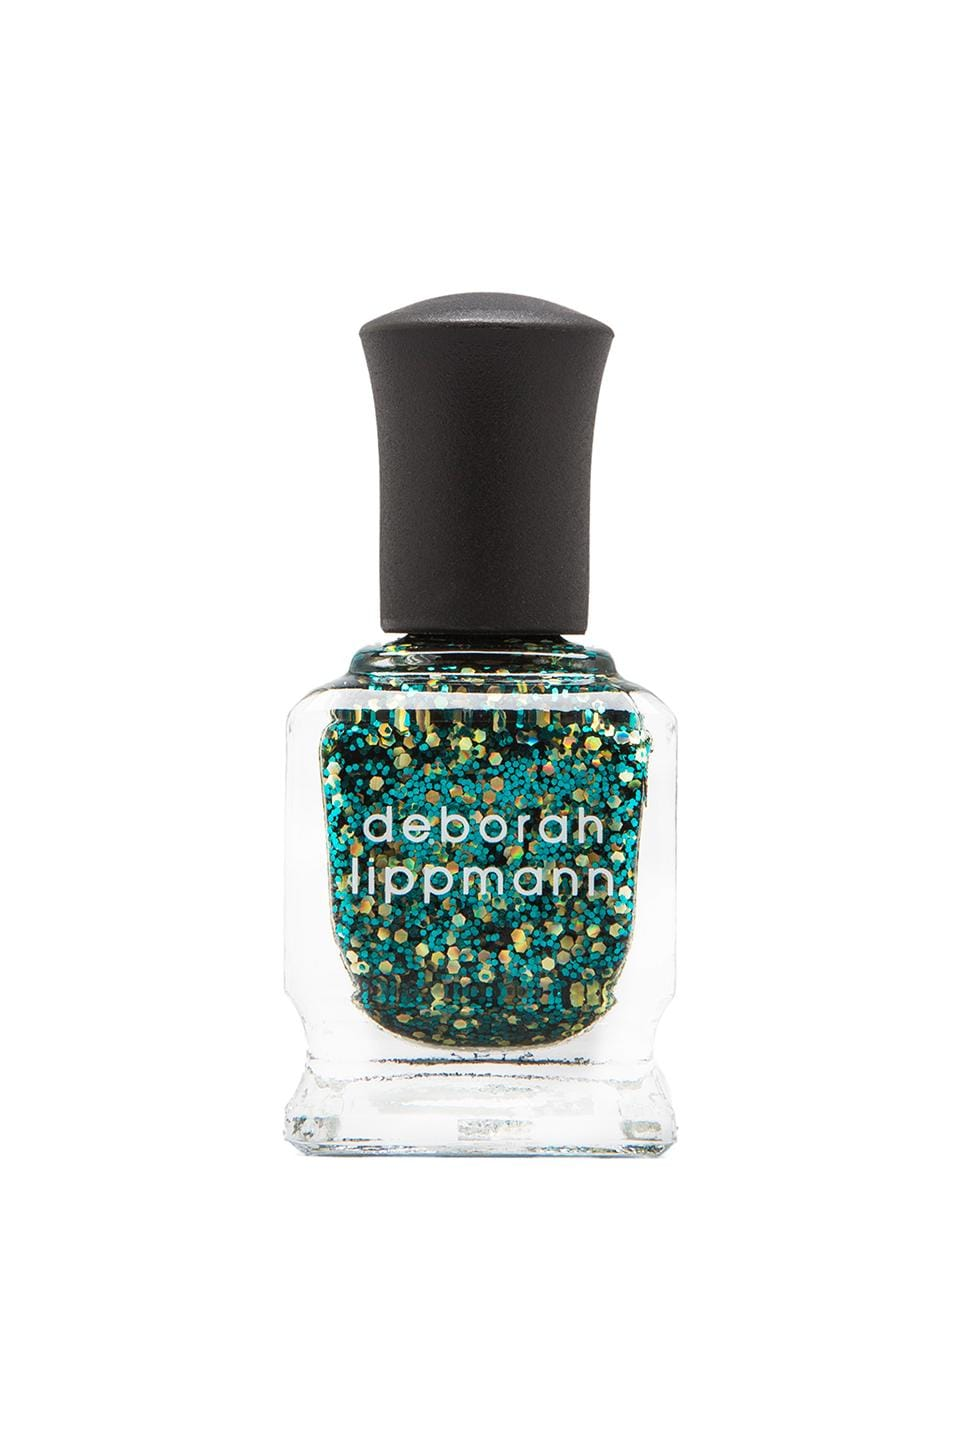 Deborah Lippmann Nail Lacquer in Shake Your Money Maker